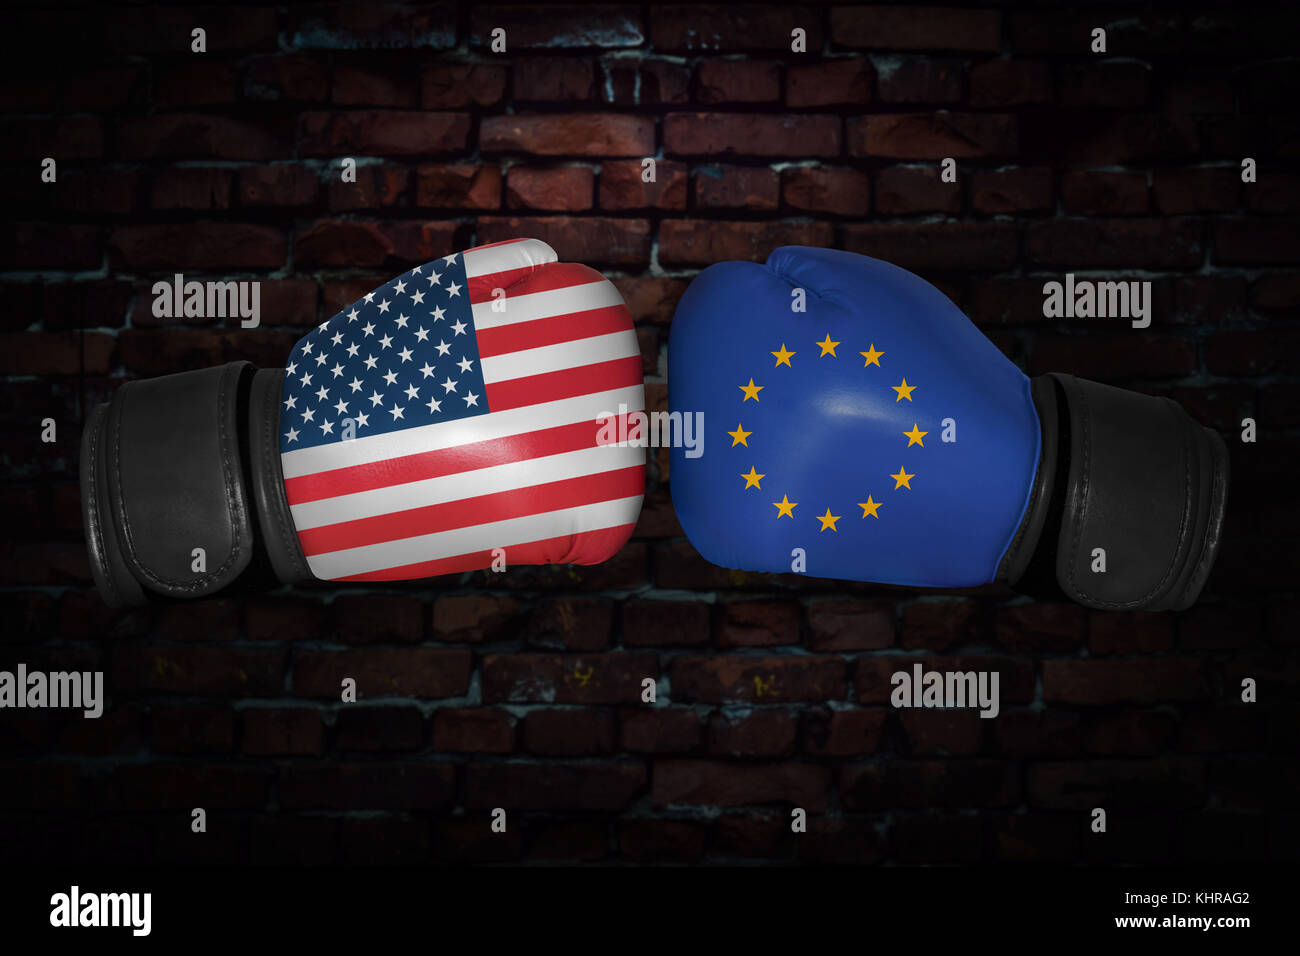 5ae5a8ddfed match. Confrontation between the USA and European Union. American